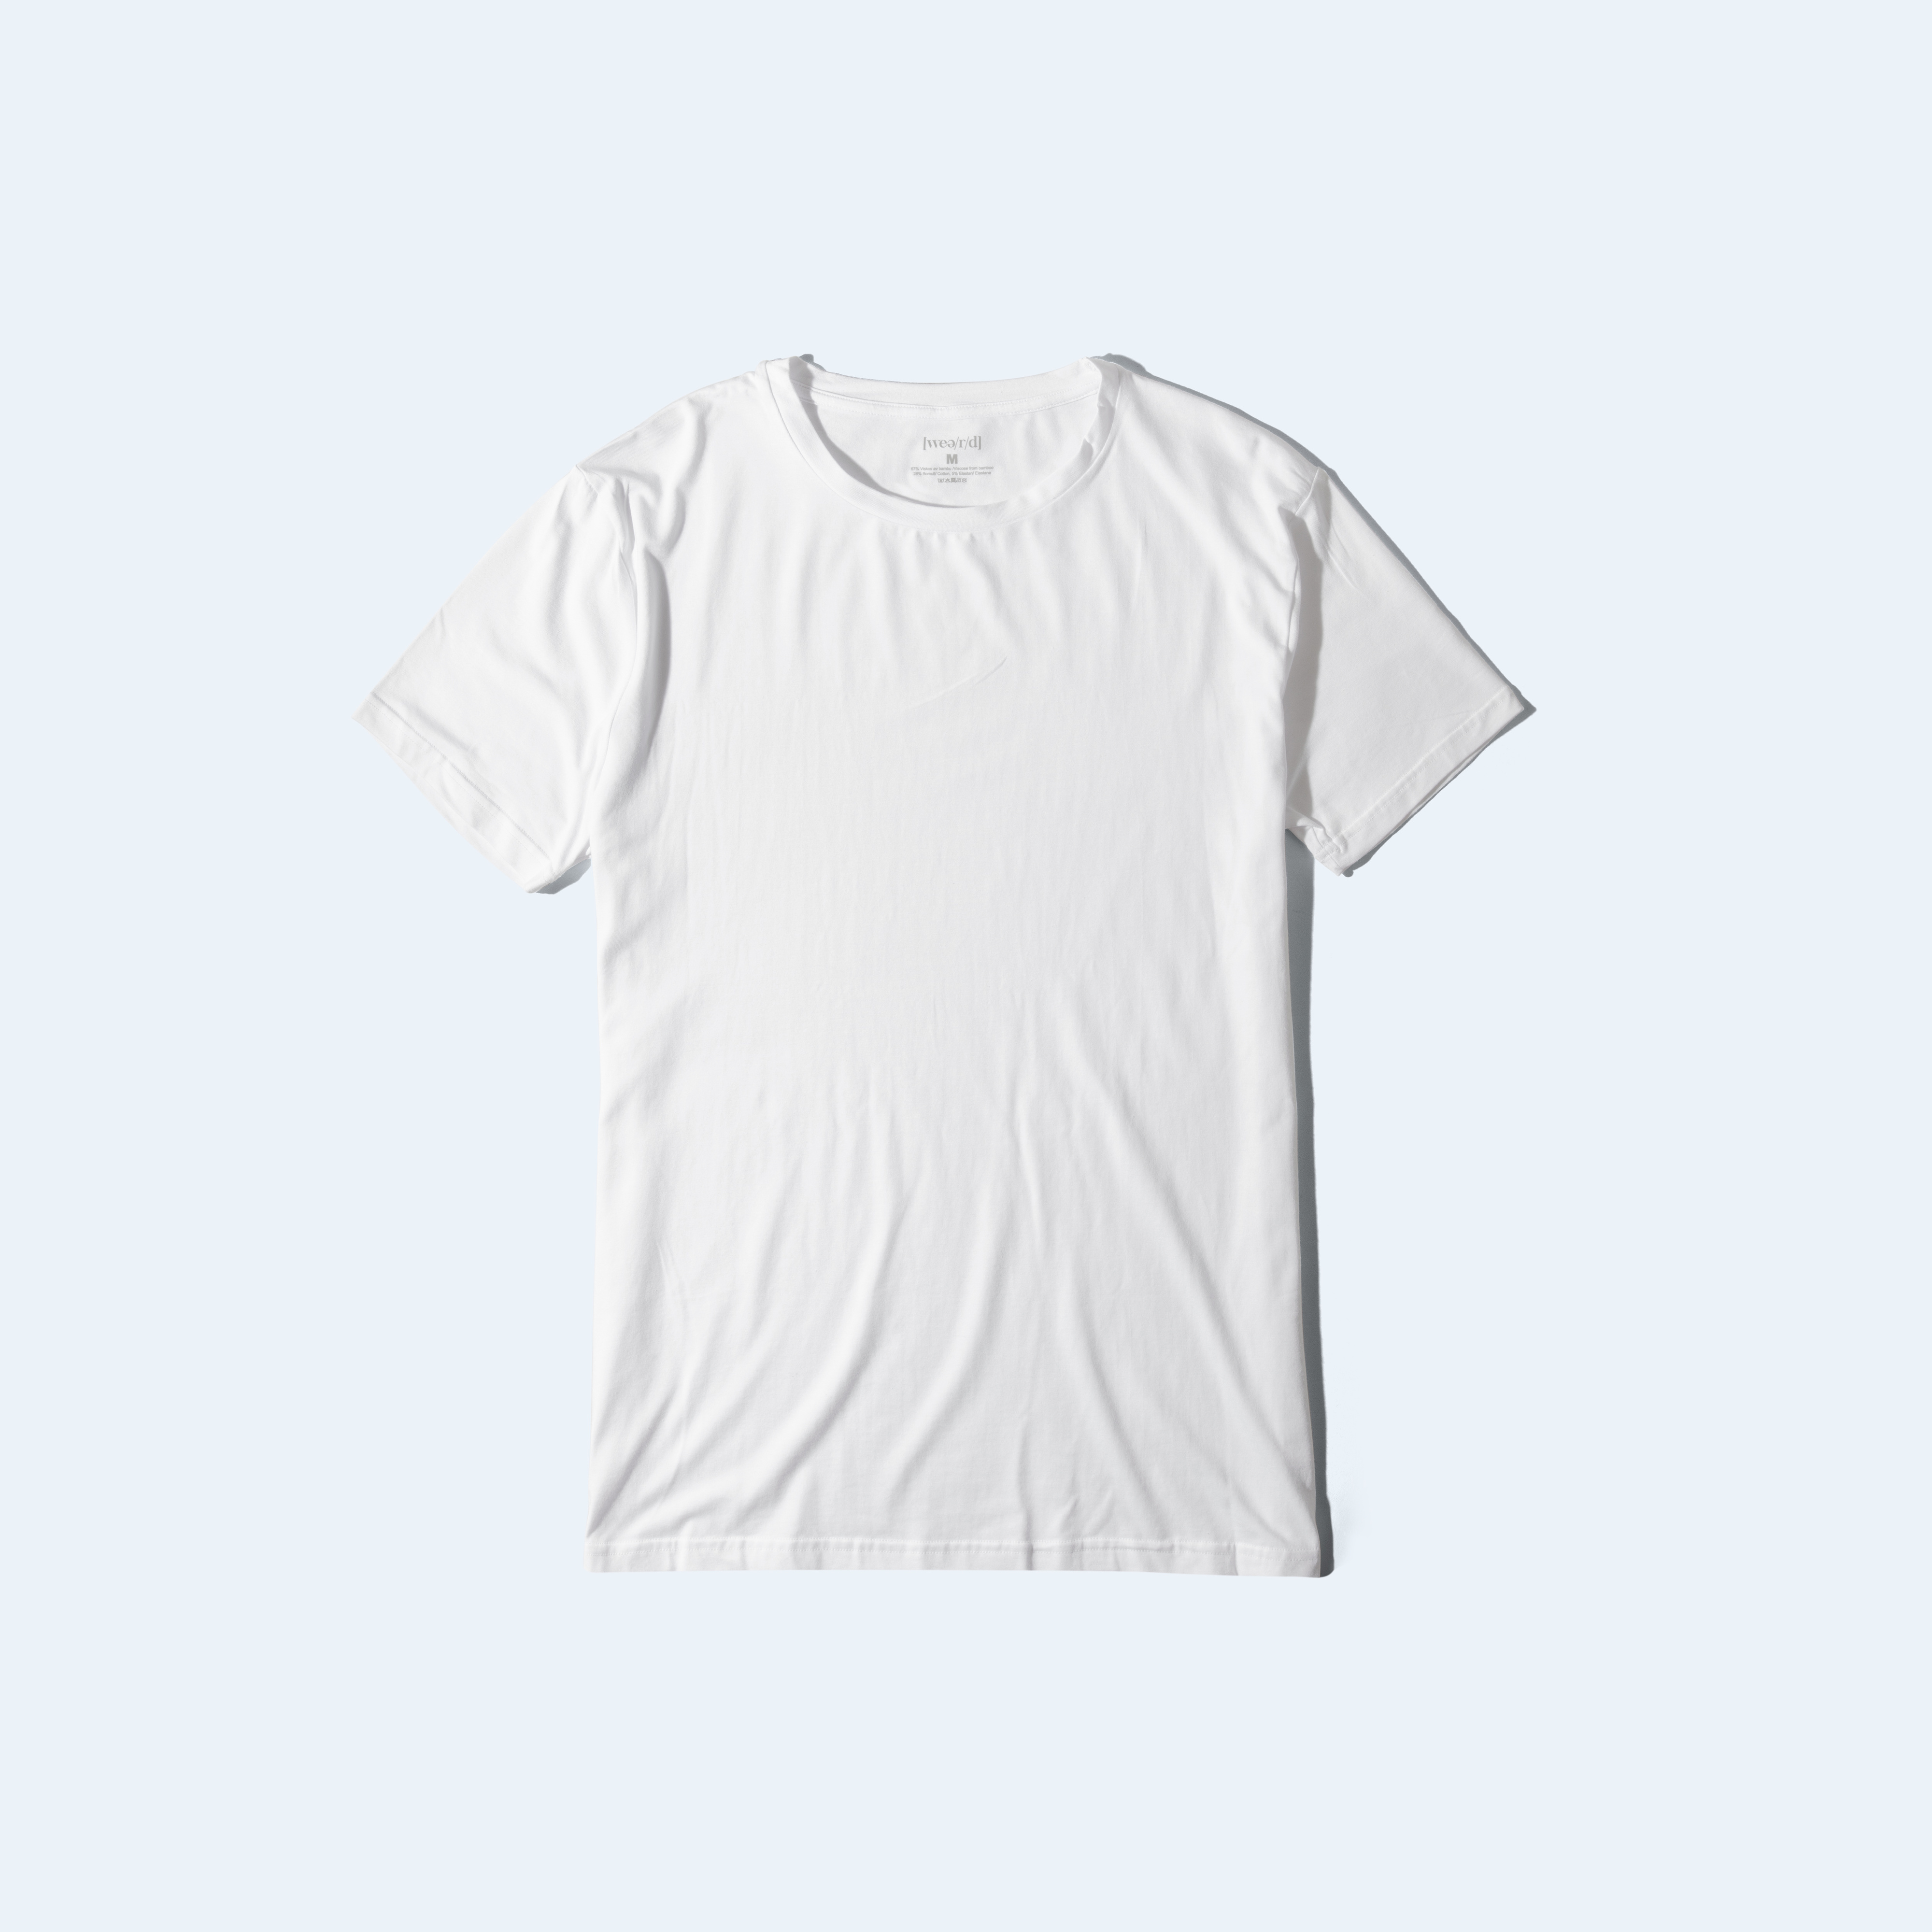 Awesome T-shirt [crew neck] - white